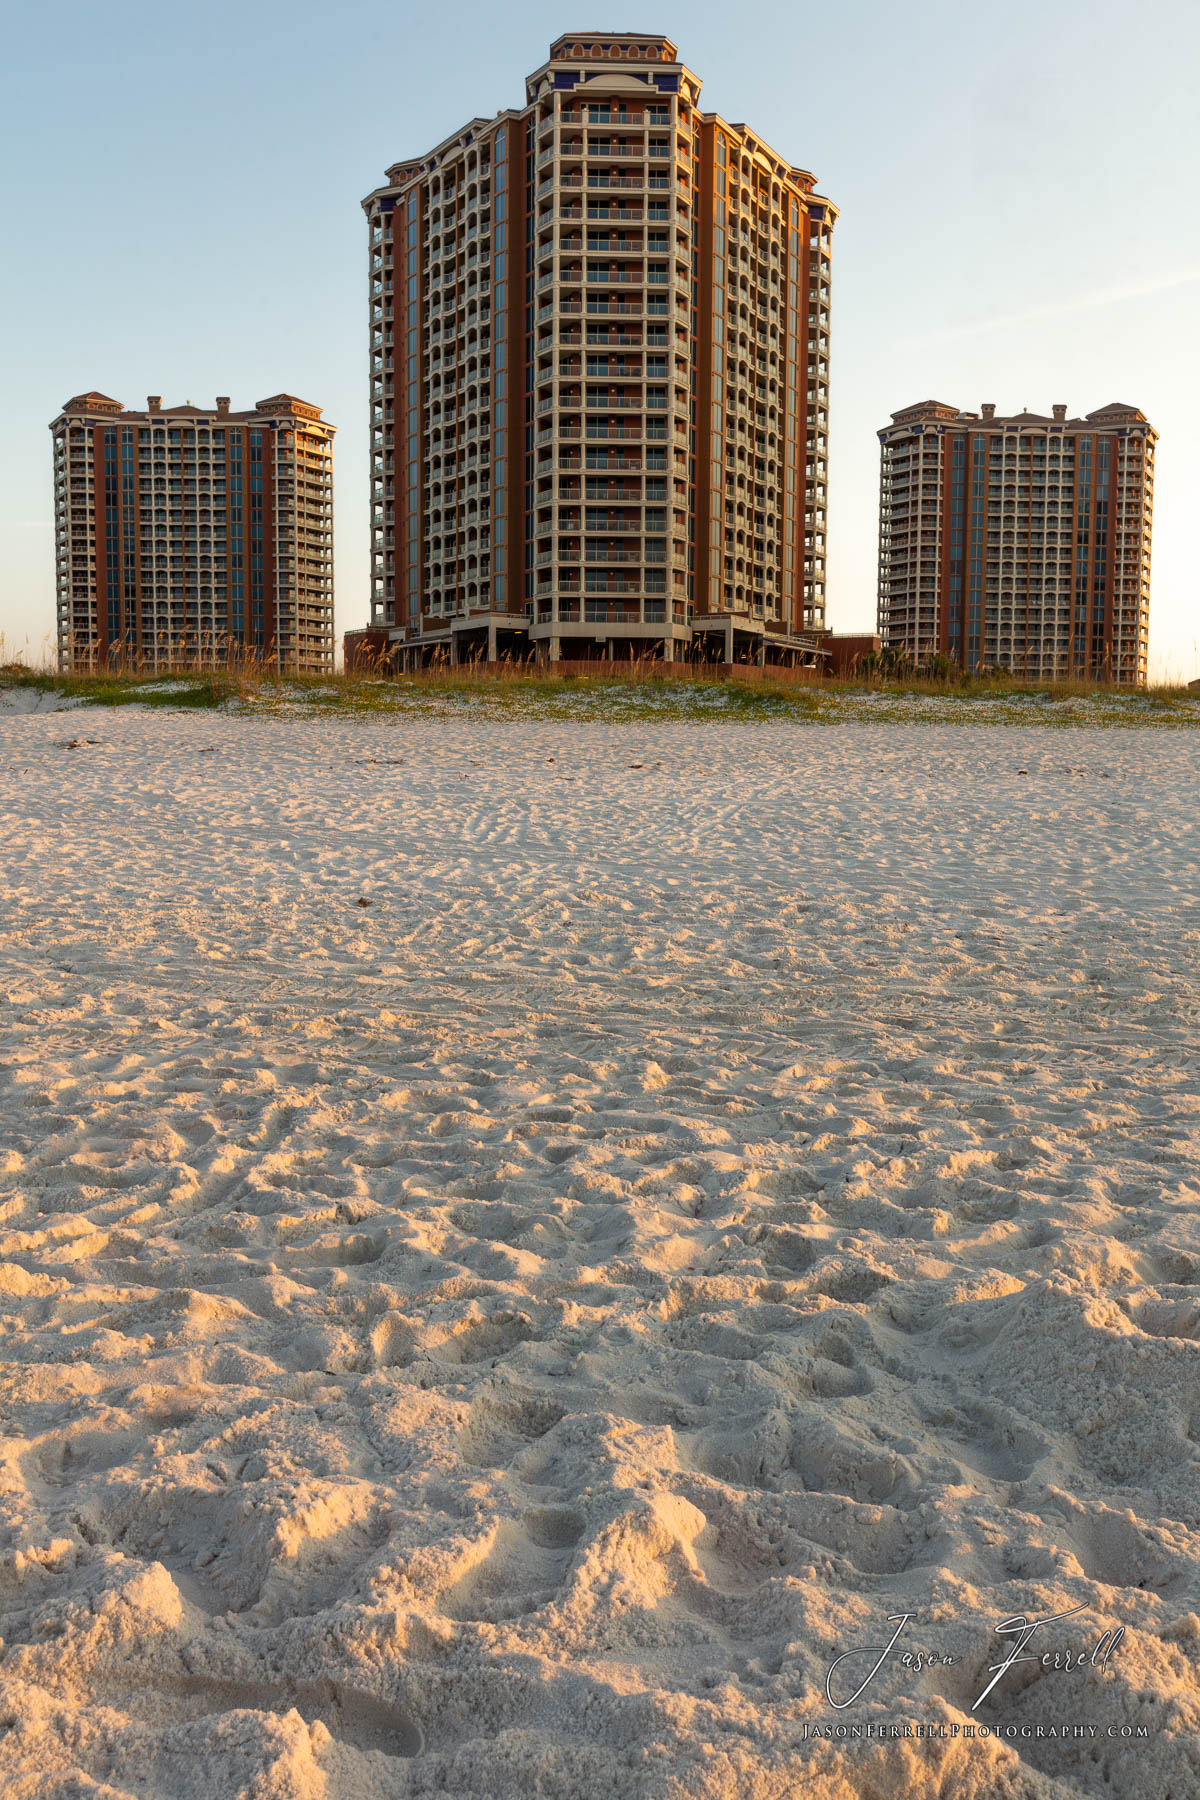 An early morning sunrise photo of the Portofino Island Resort Towers on the beach.